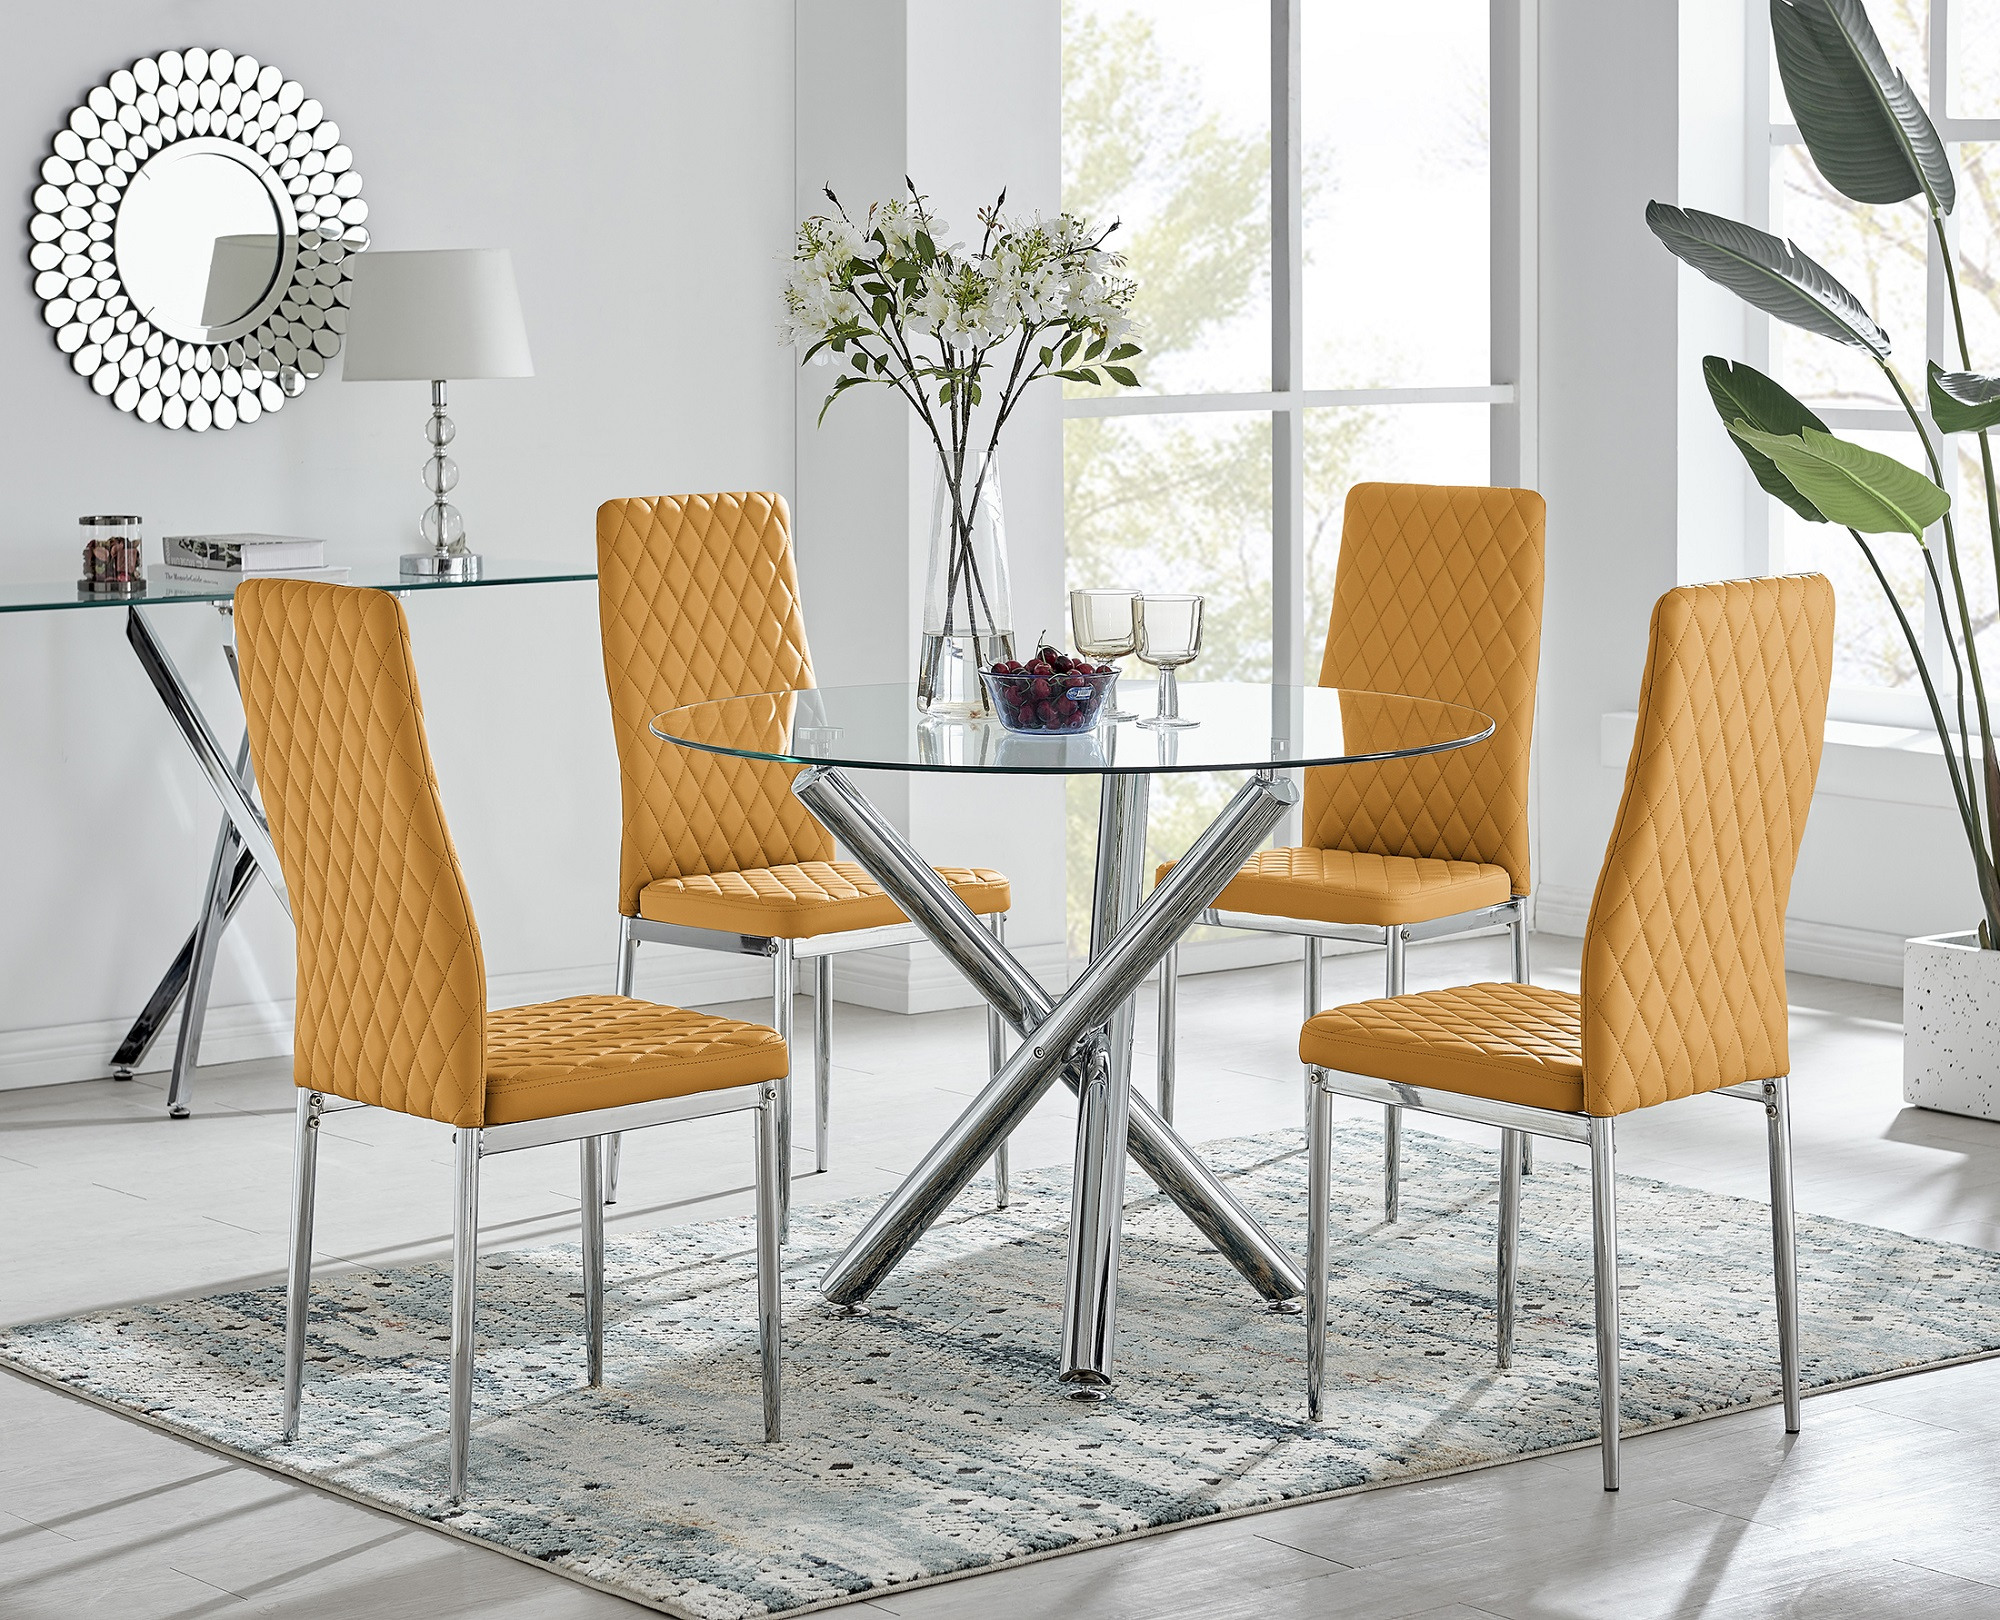 Selina Chrome Round Glass Dining Table and 9 Milan Dining Chairs